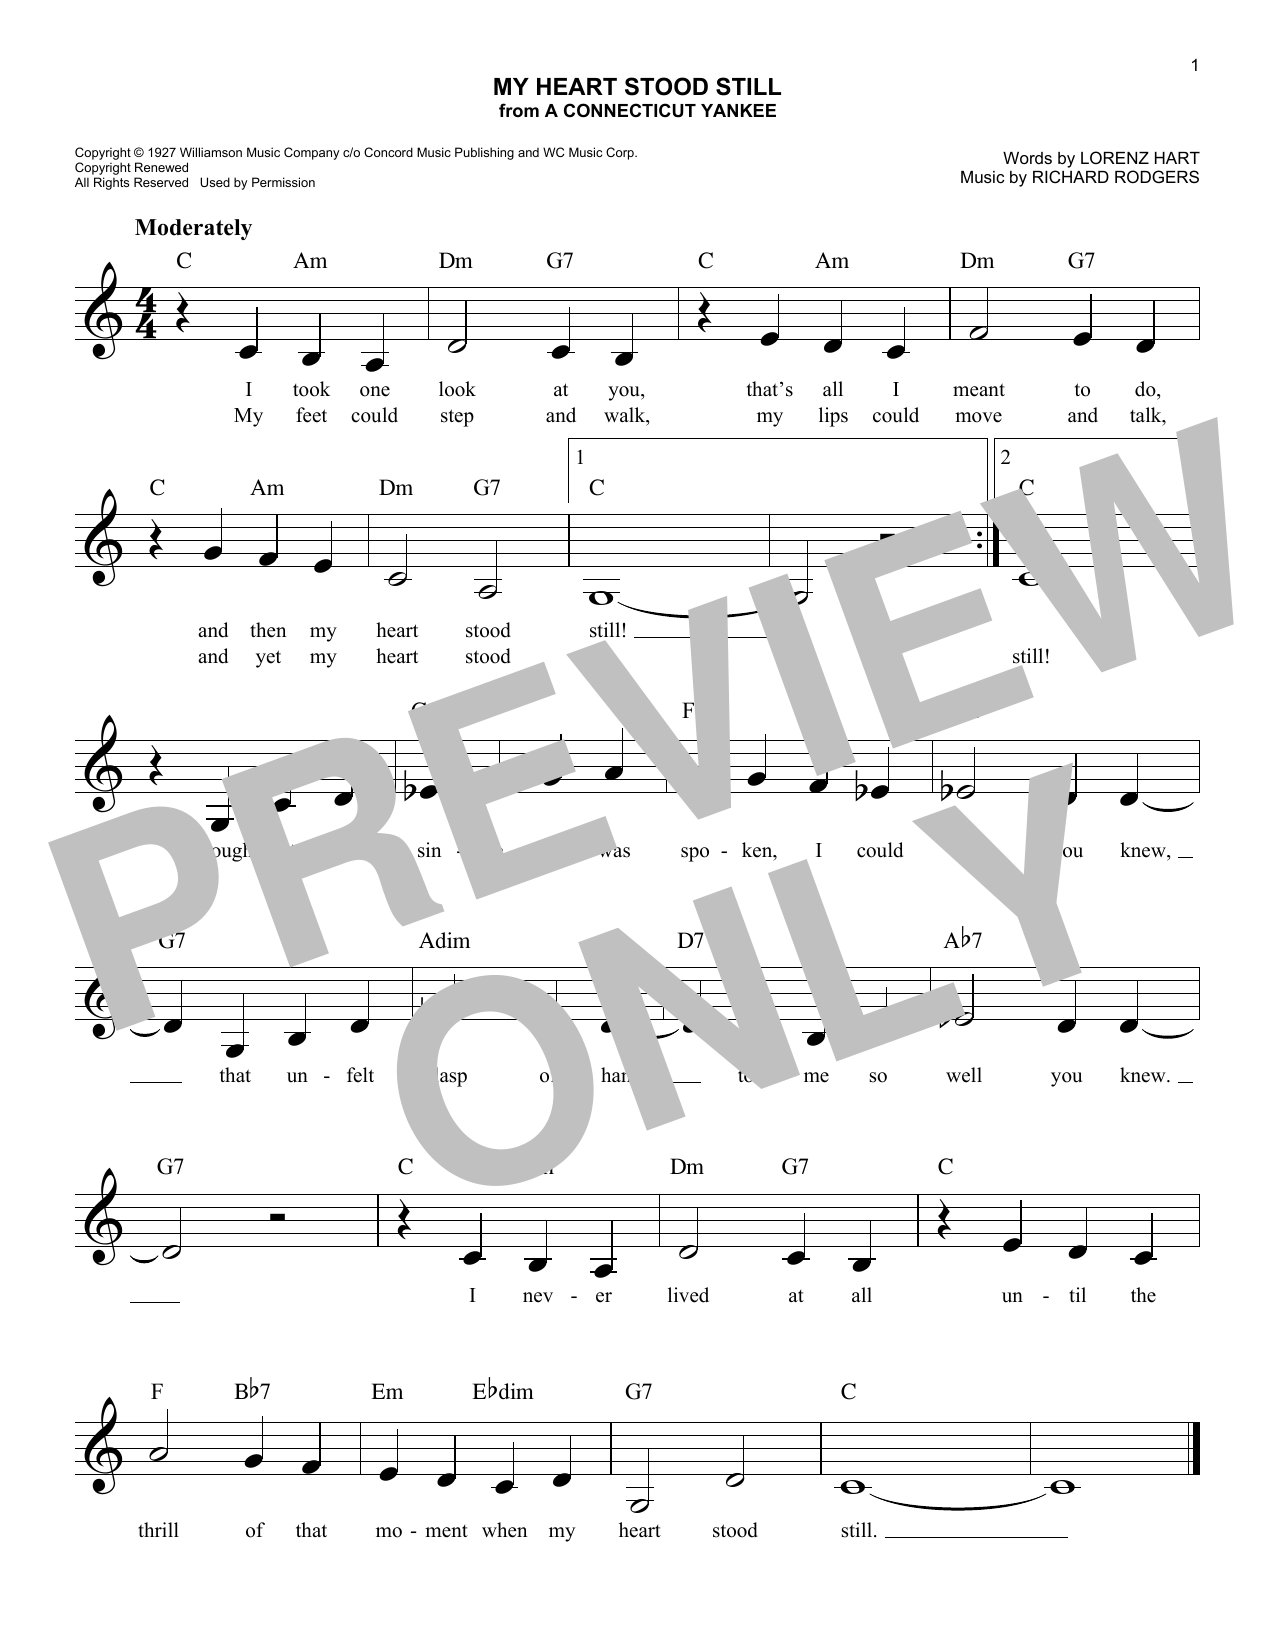 Rodgers & Hart My Heart Stood Still (from A Connecticut Yankee) sheet music notes and chords. Download Printable PDF.